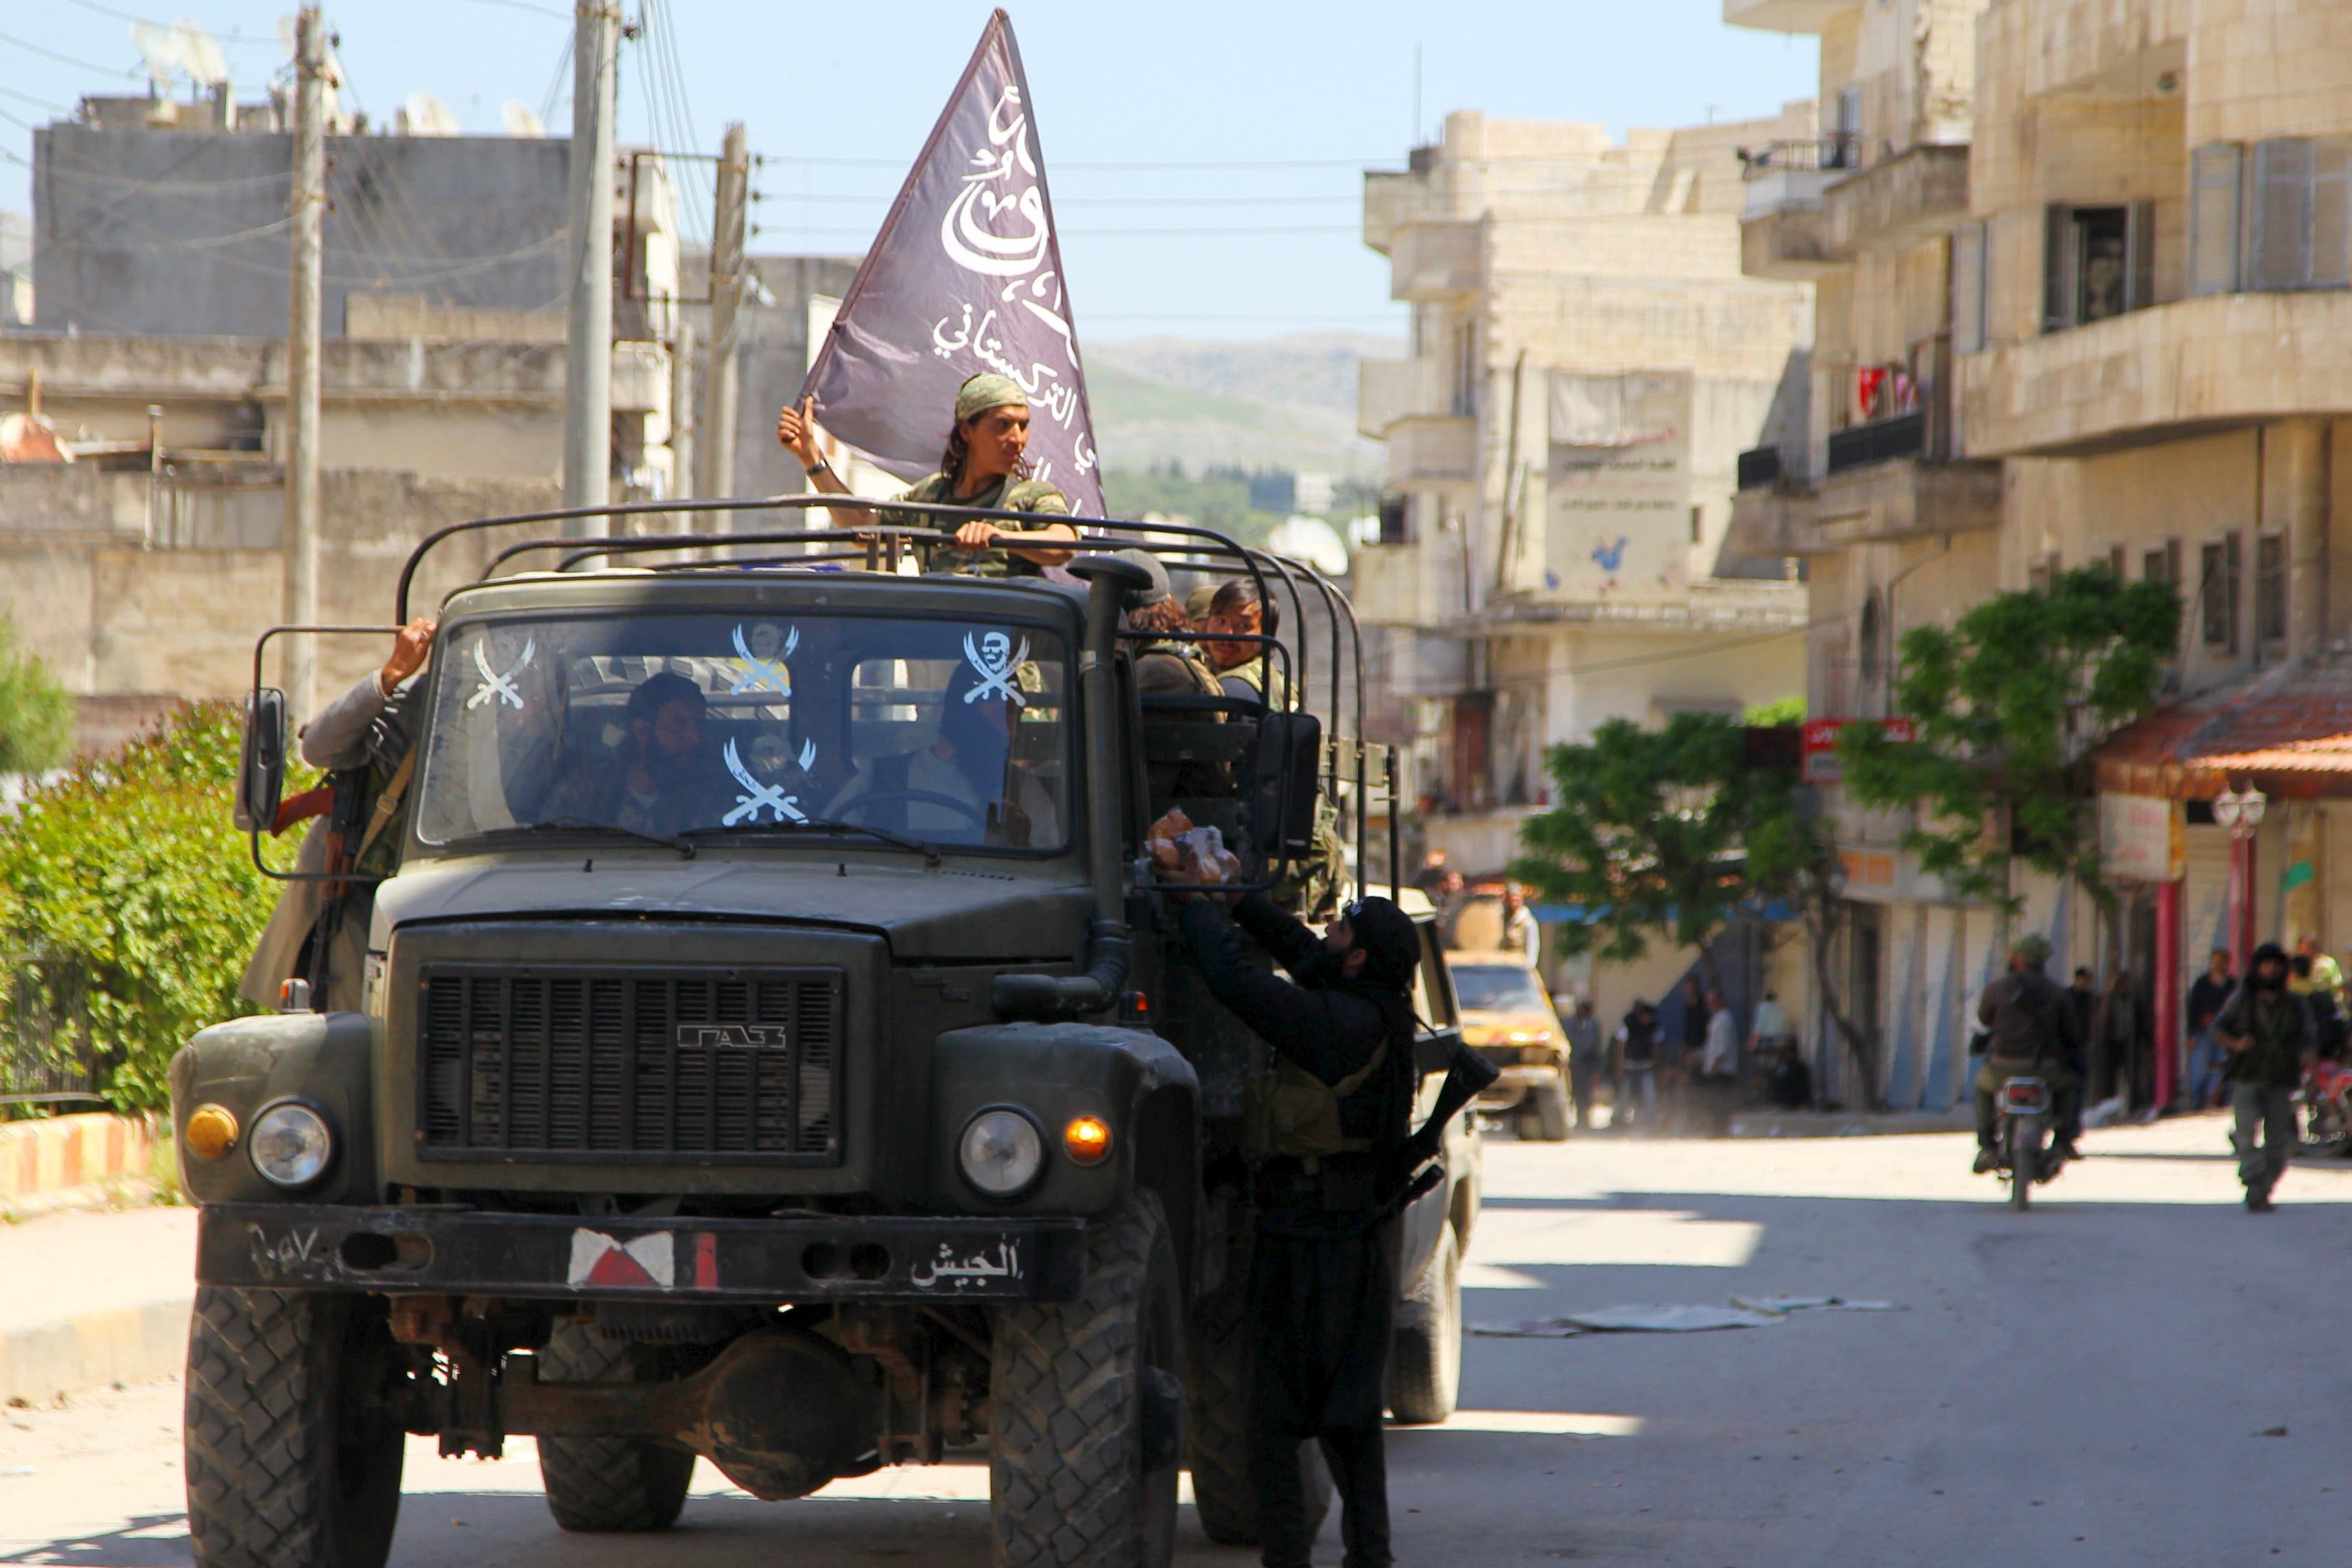 Nusra Front fighters ride a military vehicle that they seized from forces loyal to Syria's president Bashar Al-Assad in Jisr al-Shughour town after rebels took control of the area April 25, 2015. Reuters